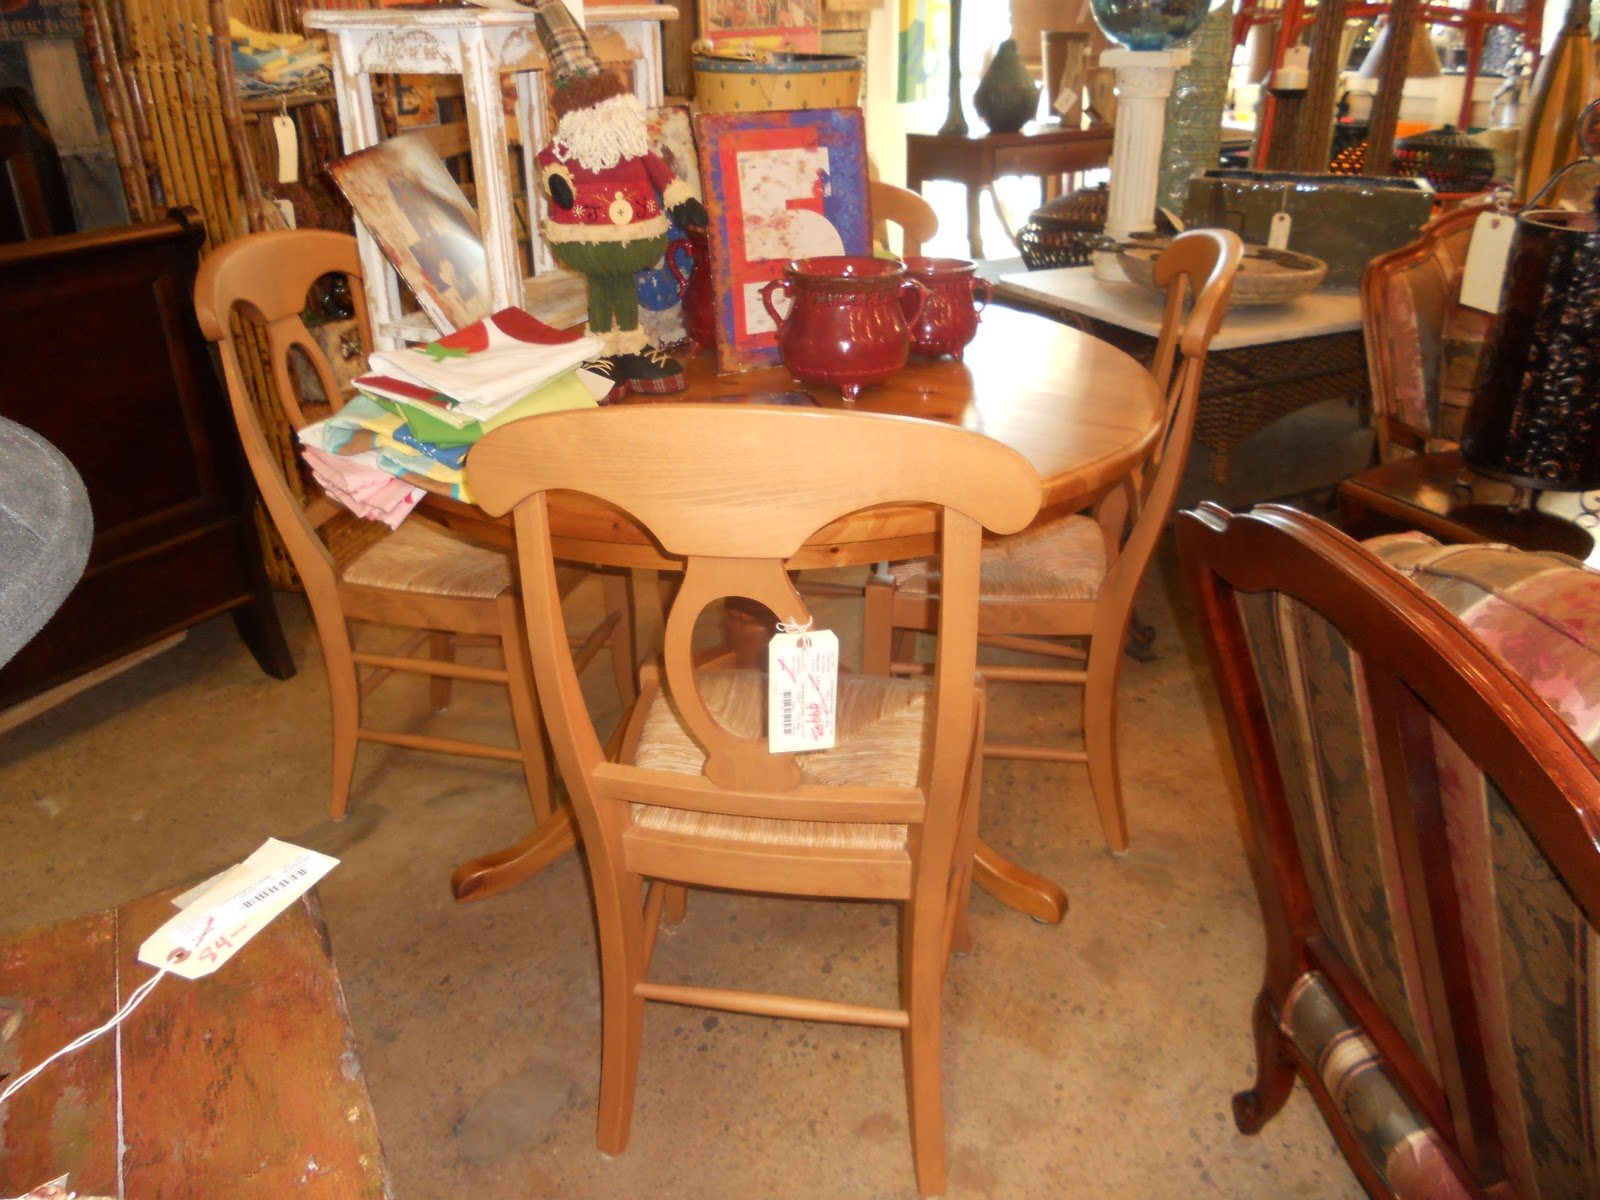 Lakehouse Outfitters Blog The Price Is Right LHO - Pottery barn pine dining table